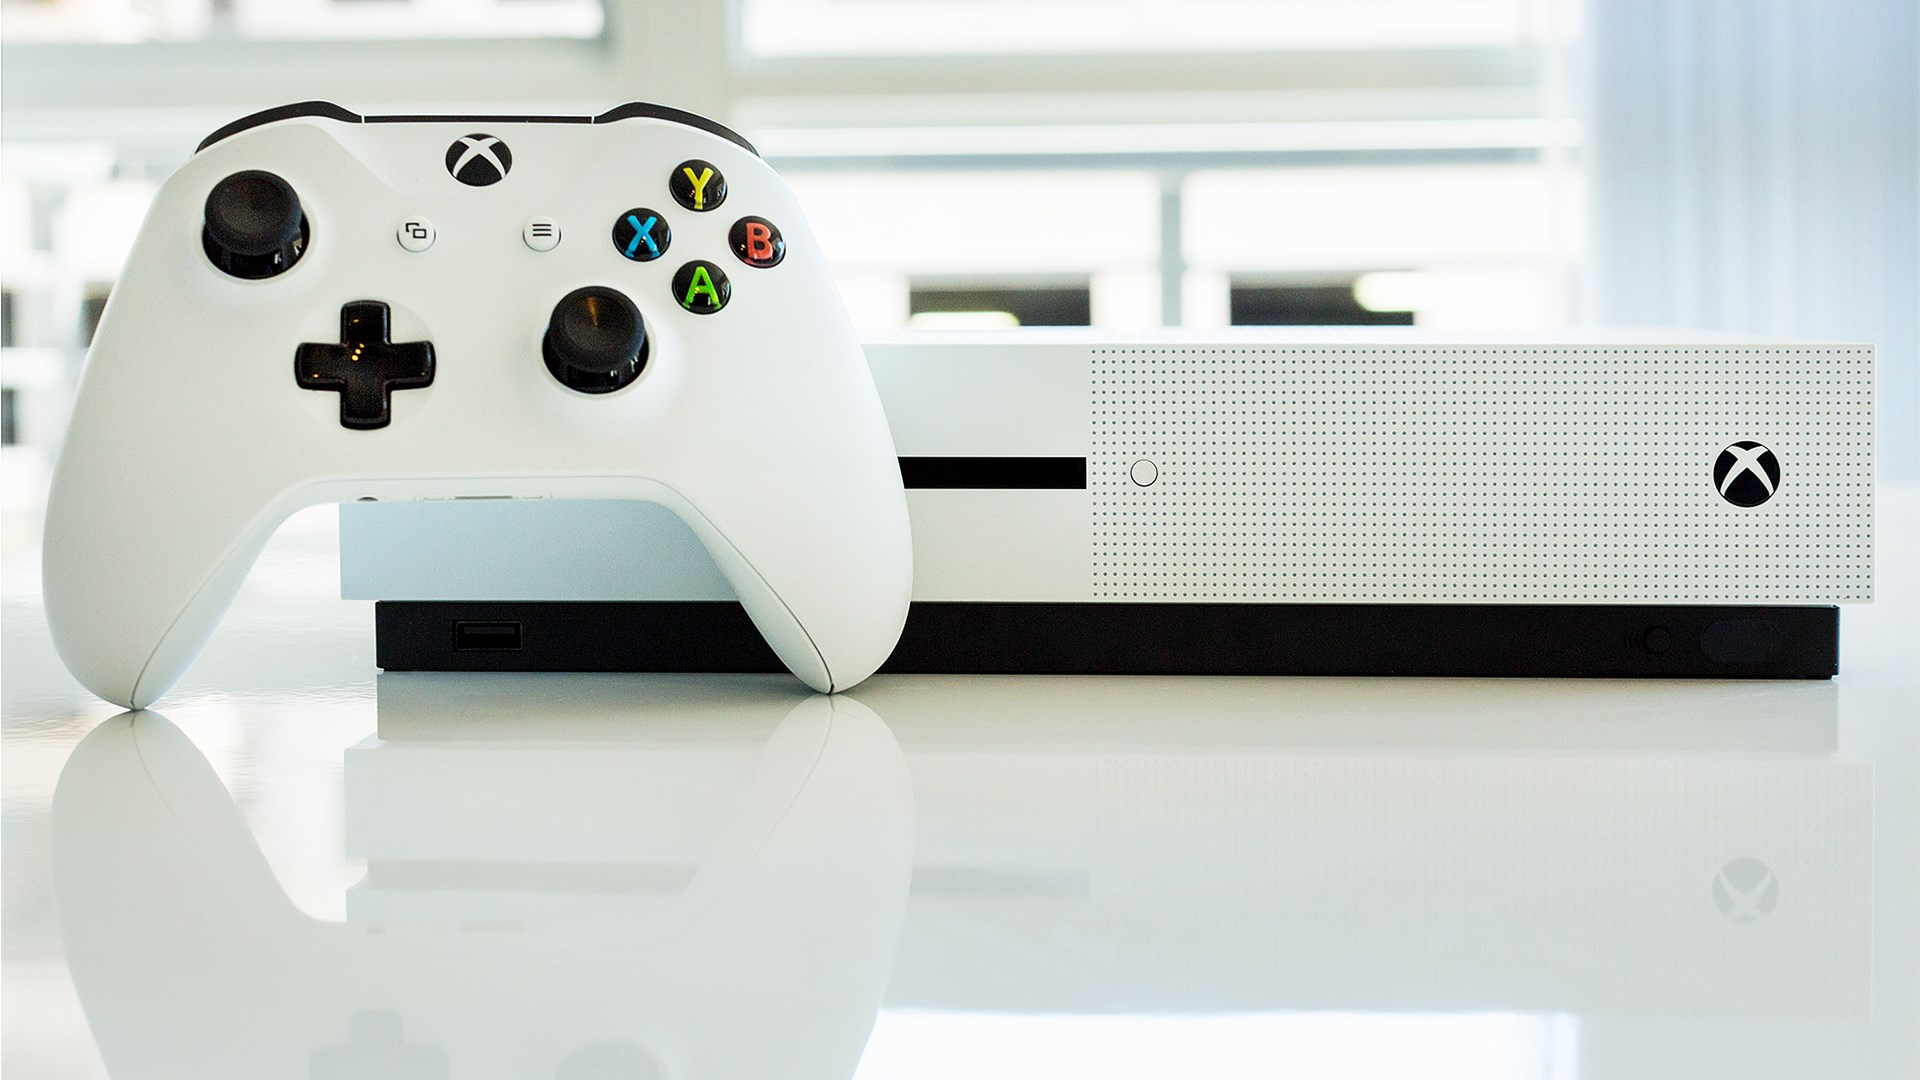 controllers work with windows 10